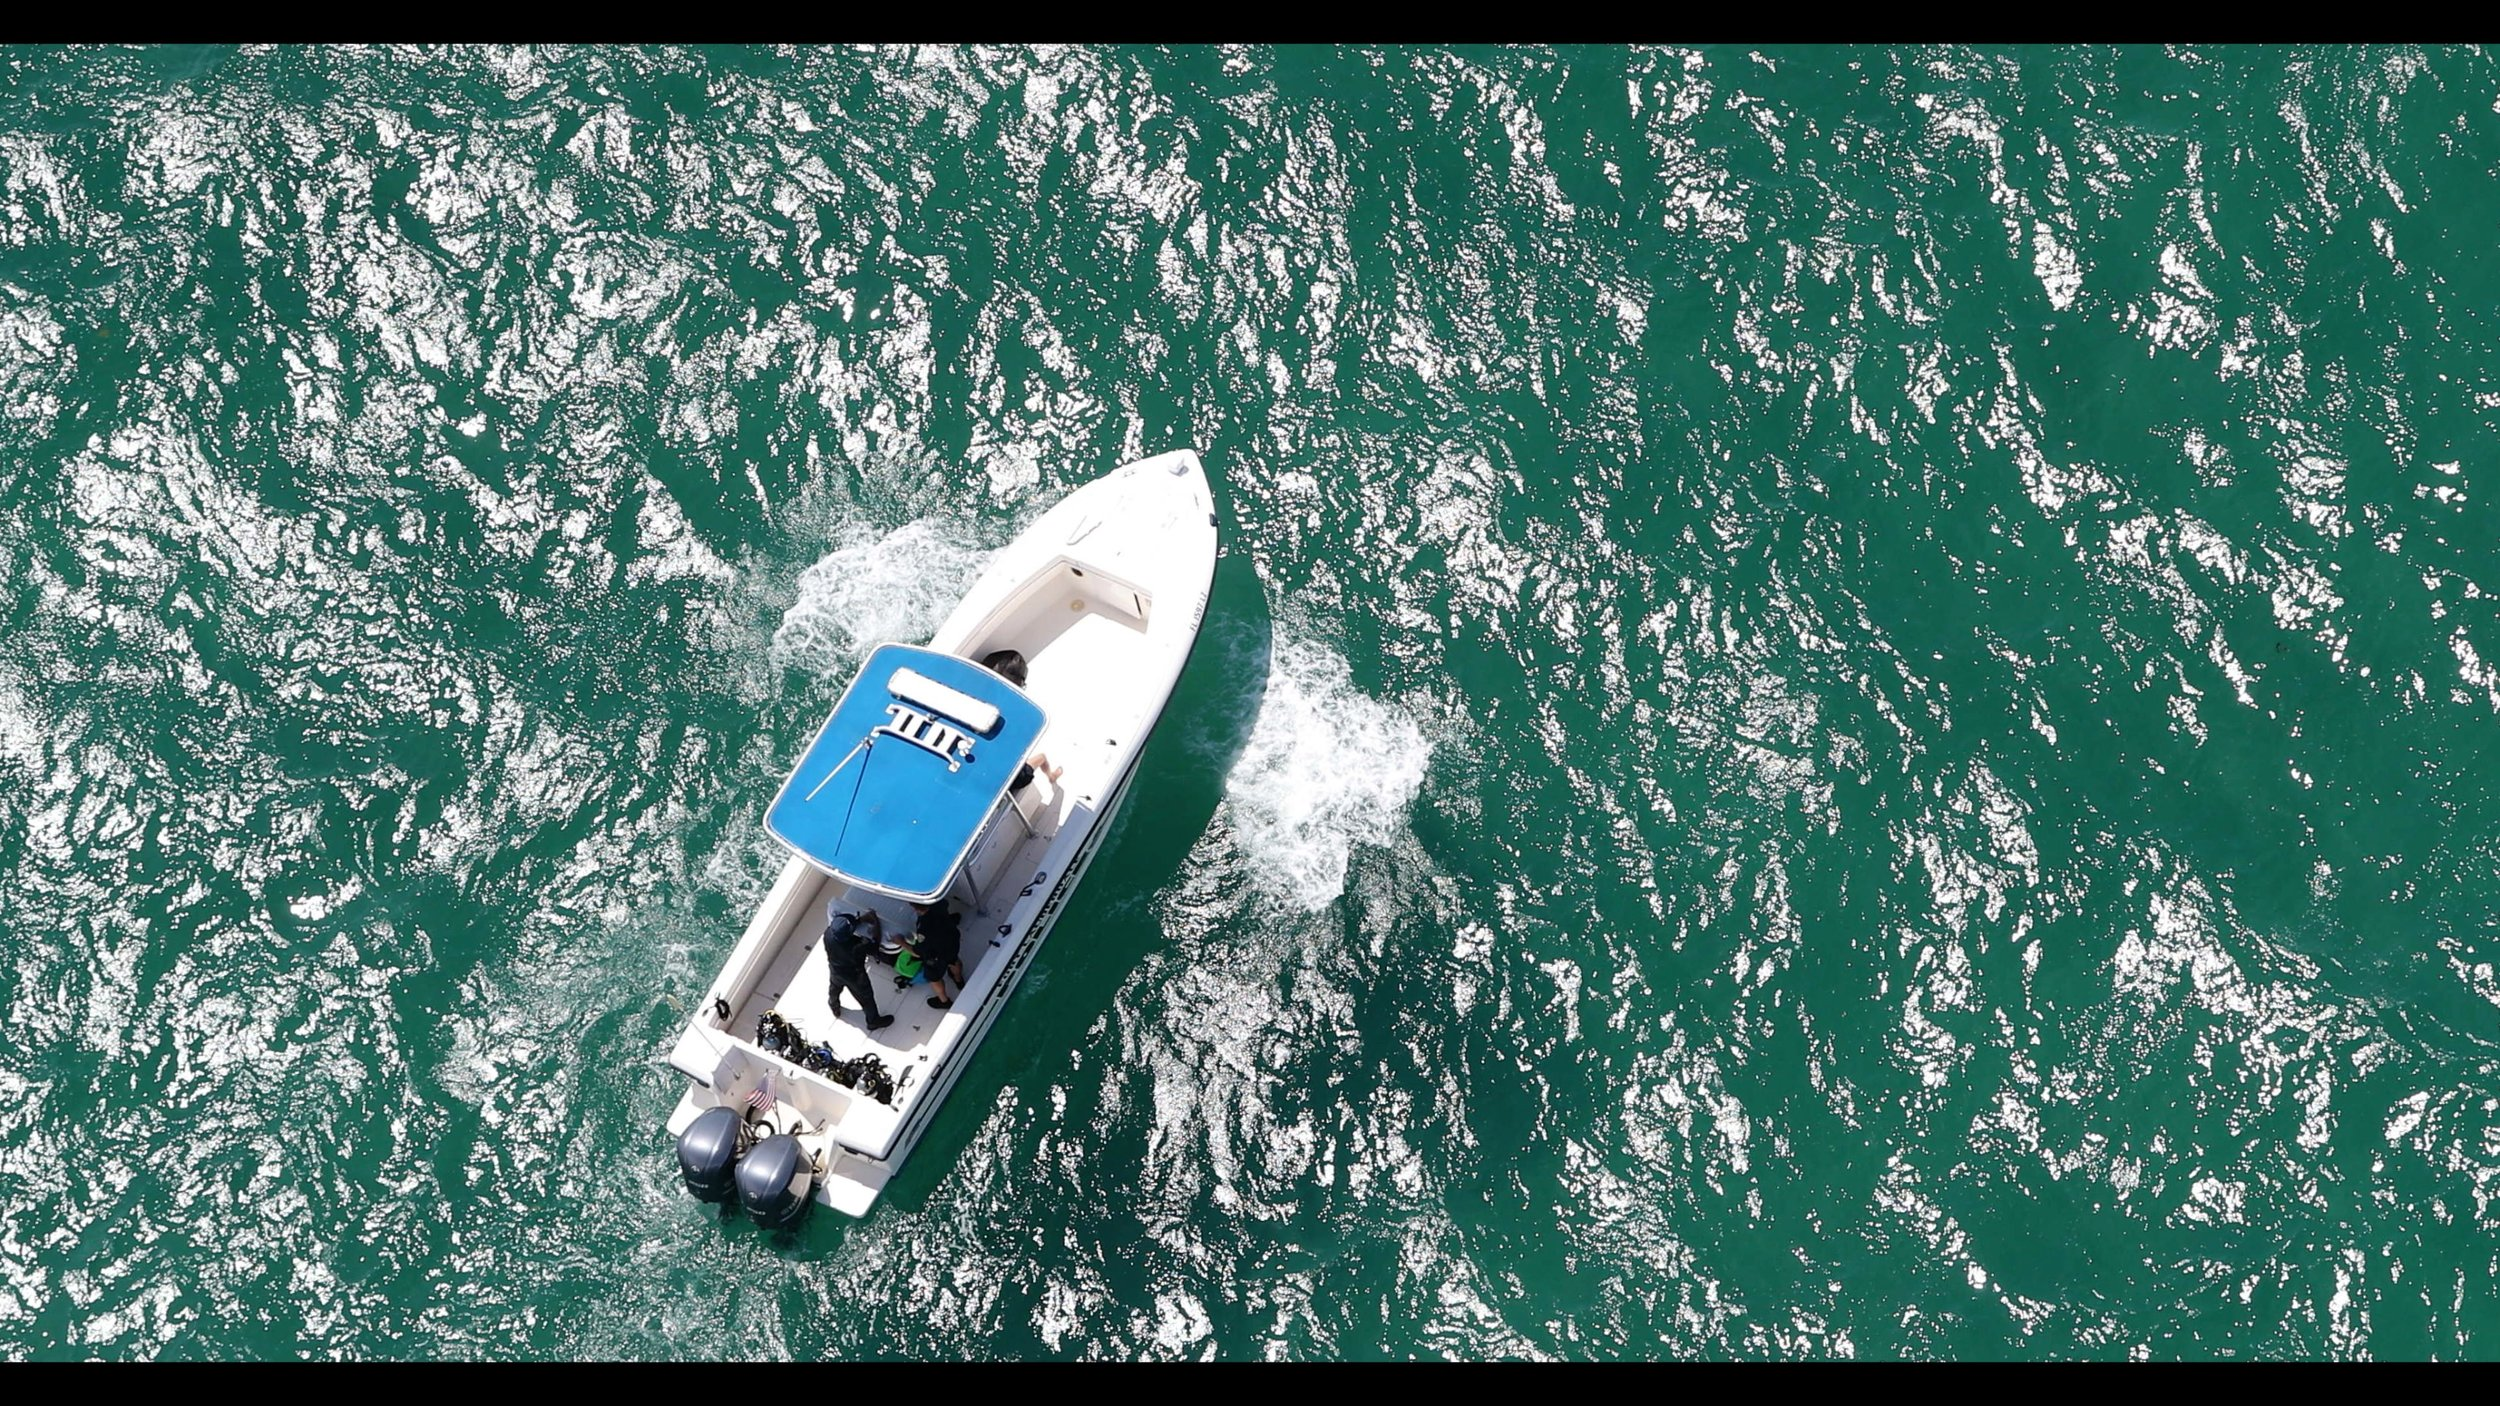 Patrol Boat offshore during Fort Lauderdale, FL Airshow. Shot from R44 Heli.